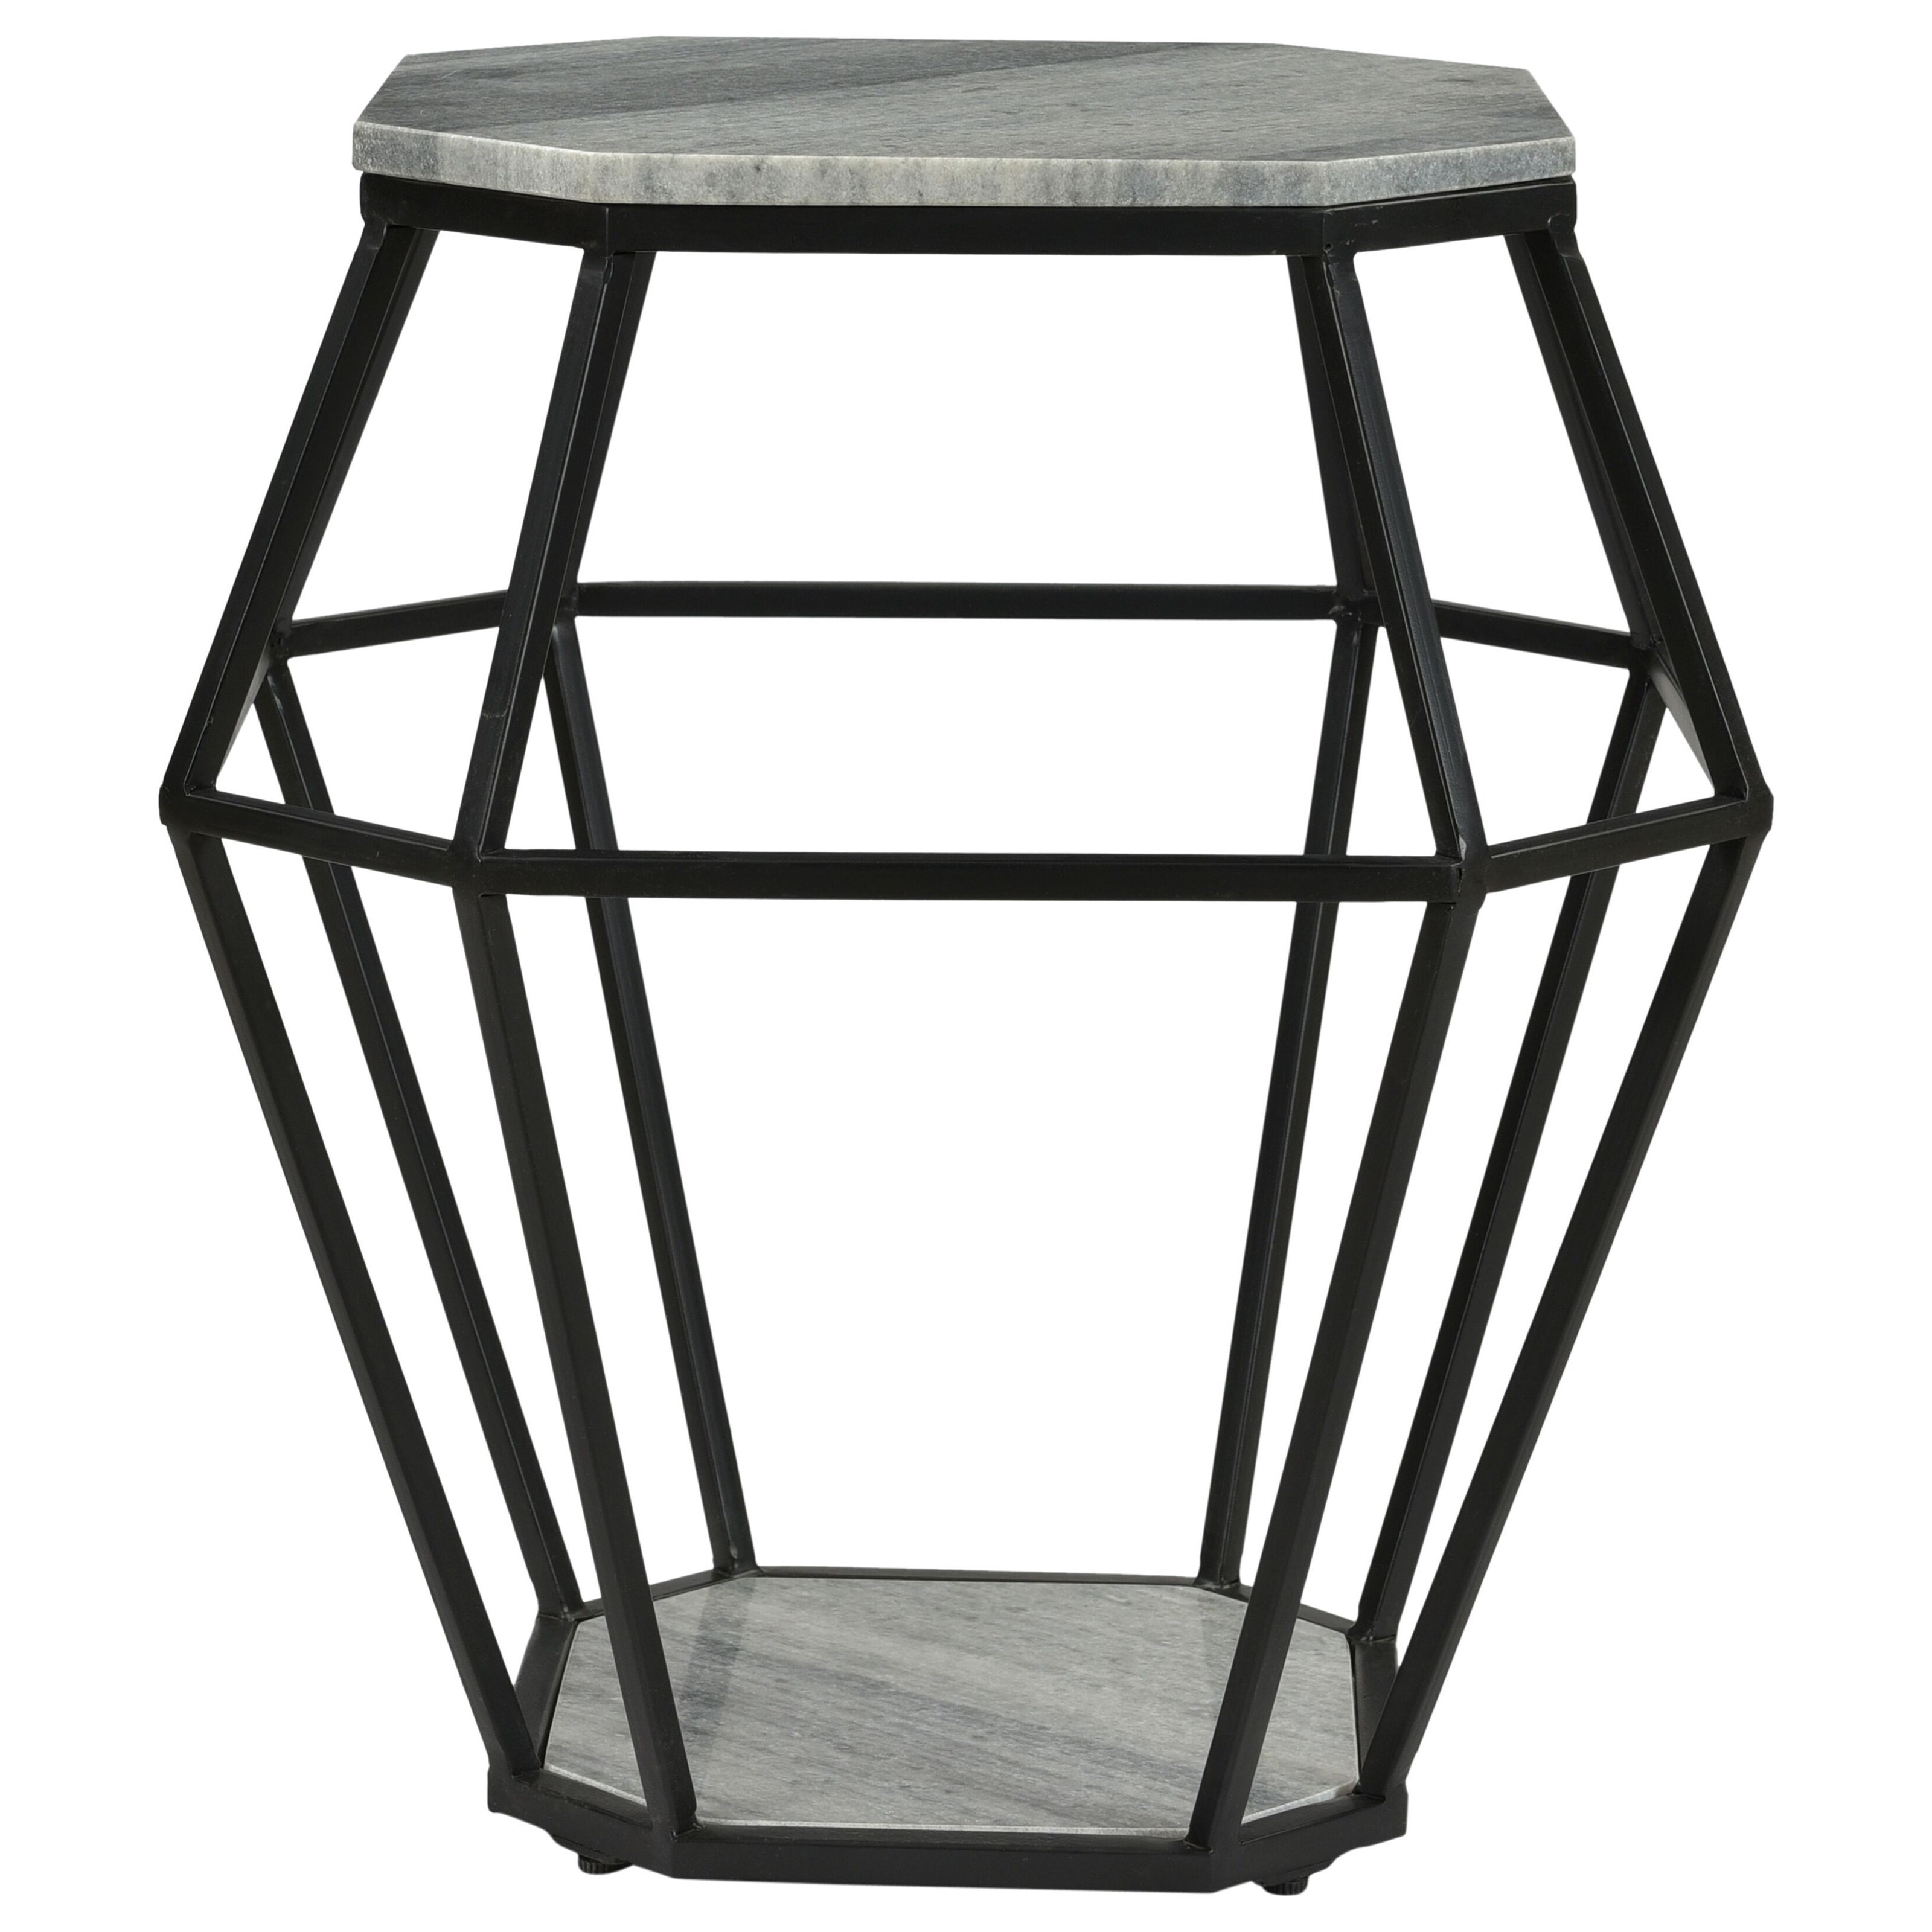 C2C Accents Octagonal Accent Table by C2C at Walker's Furniture